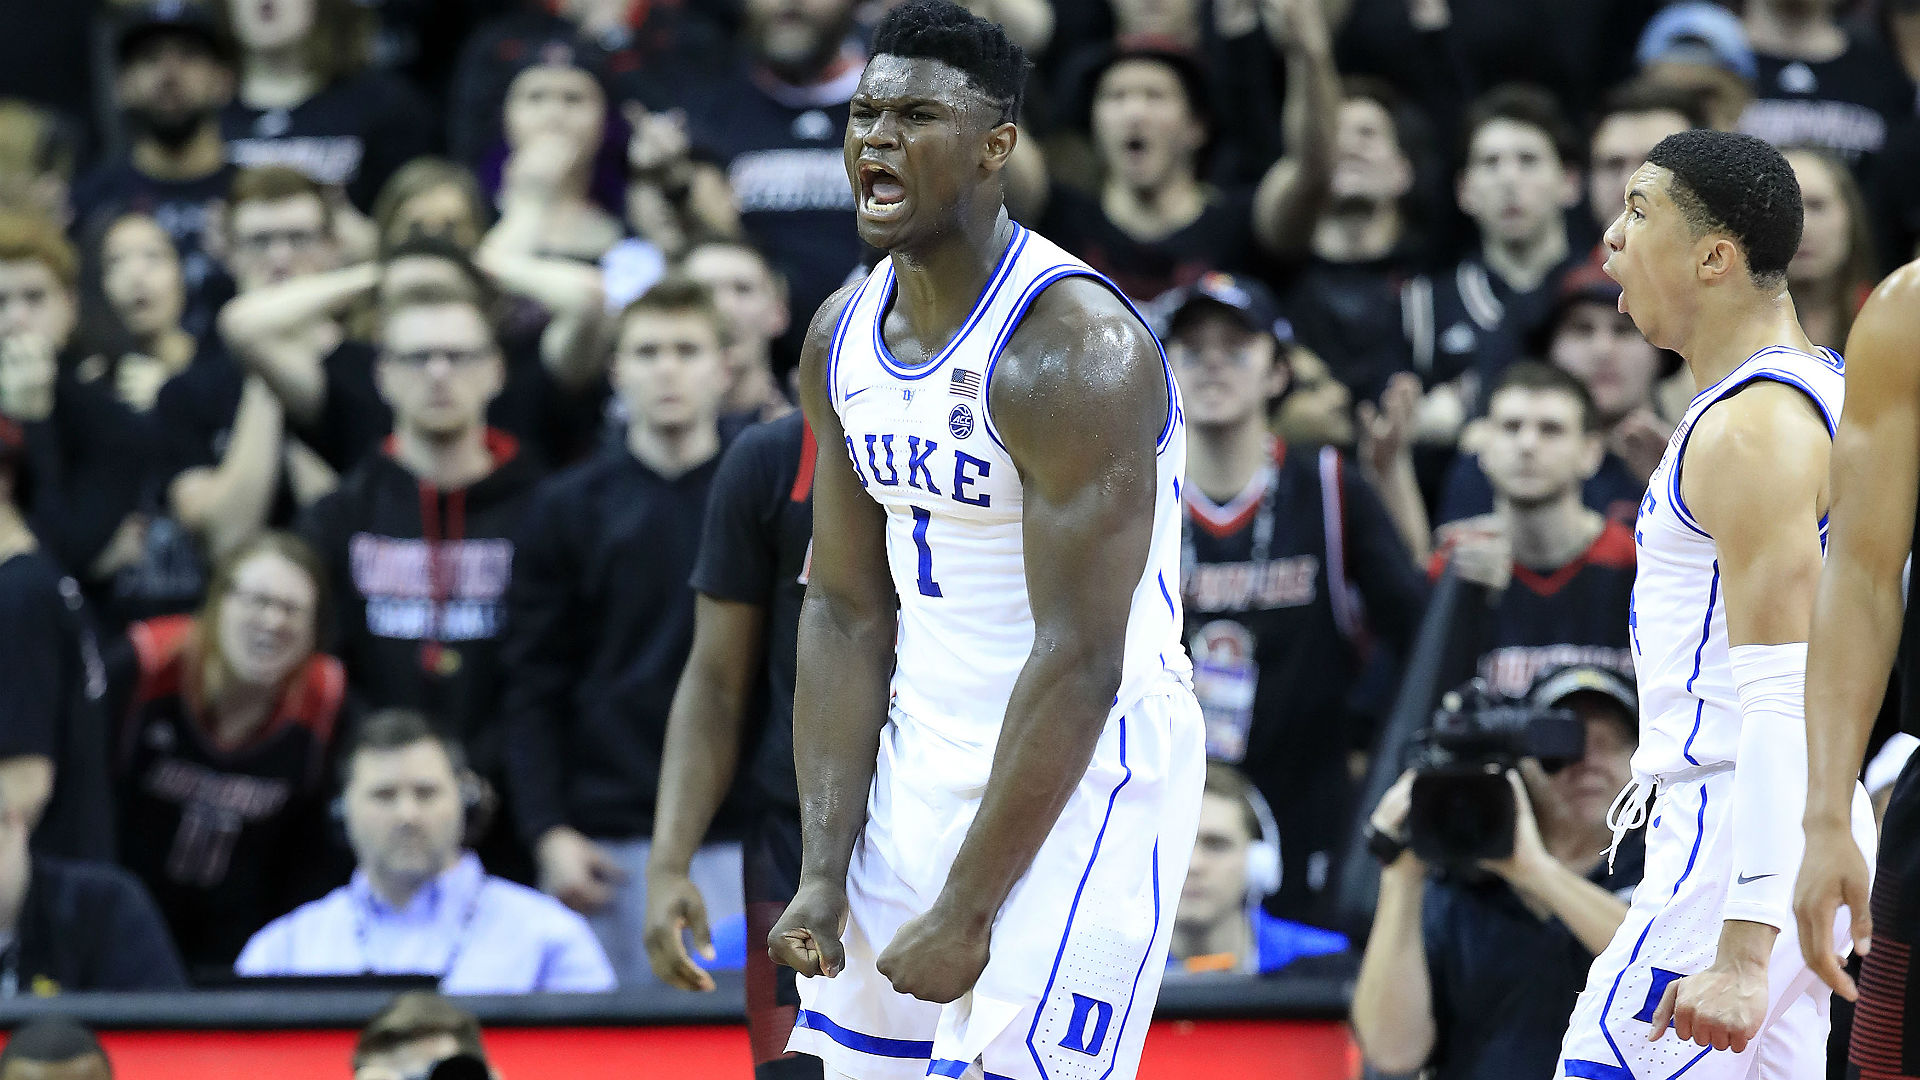 Duke vs. Louisville: 5 crazy stats from the Blue Devils' improbable comeback win